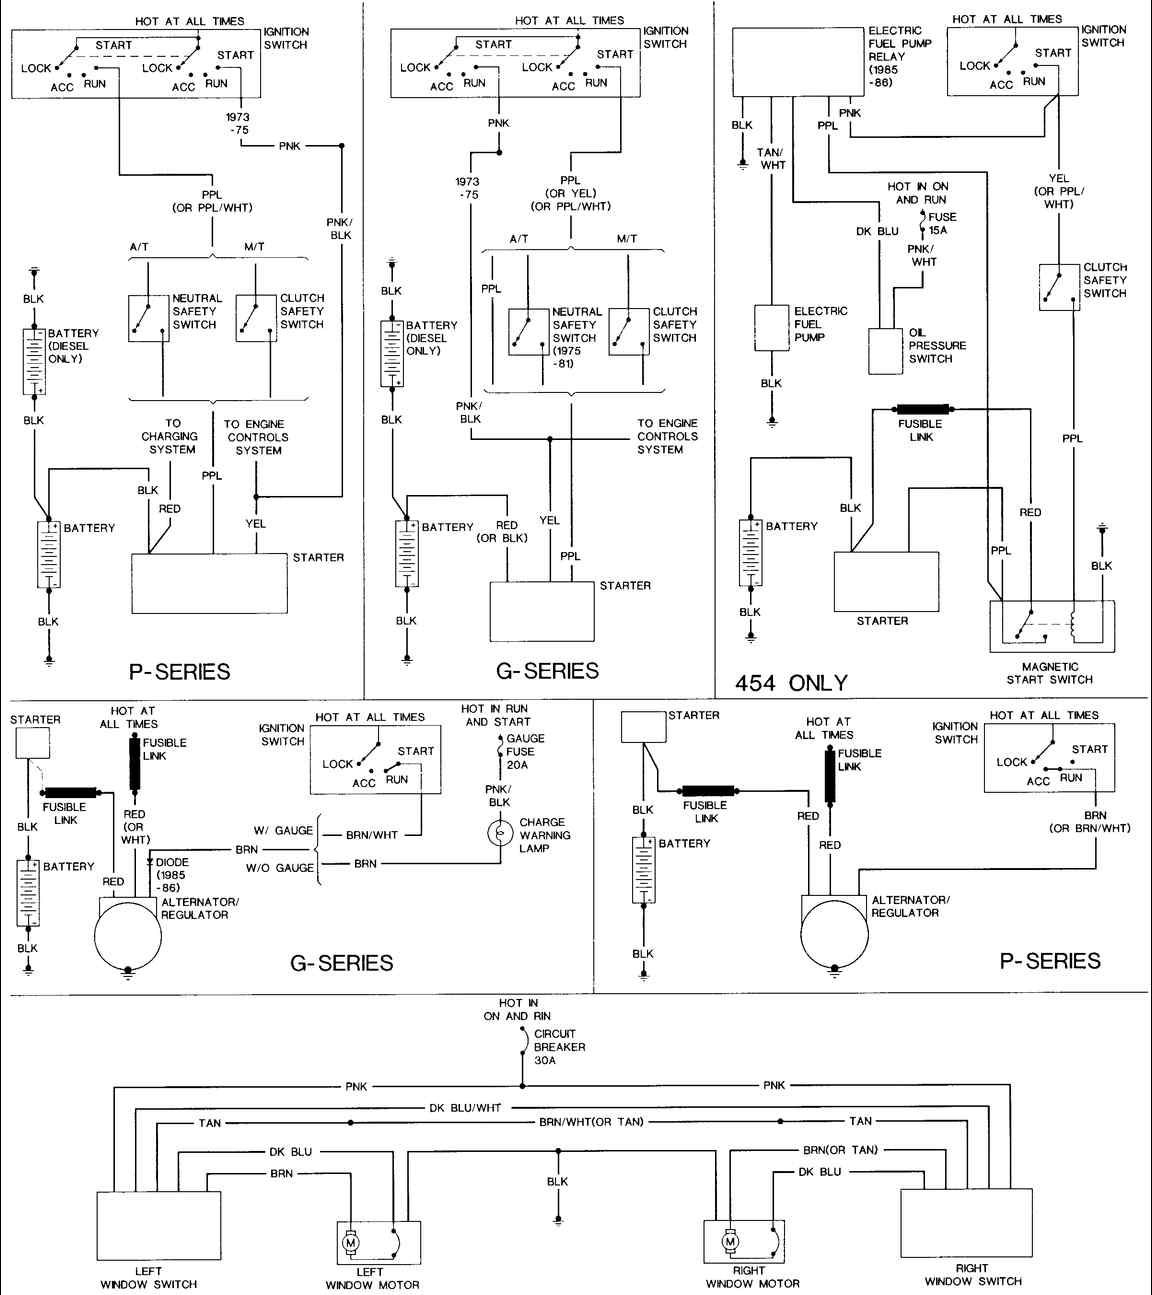 0c73623a181dc376dbb4777e2029d285 85 chevy truck wiring diagram 85 chevy van the steering column 1993 chevy truck wiring schematic at honlapkeszites.co